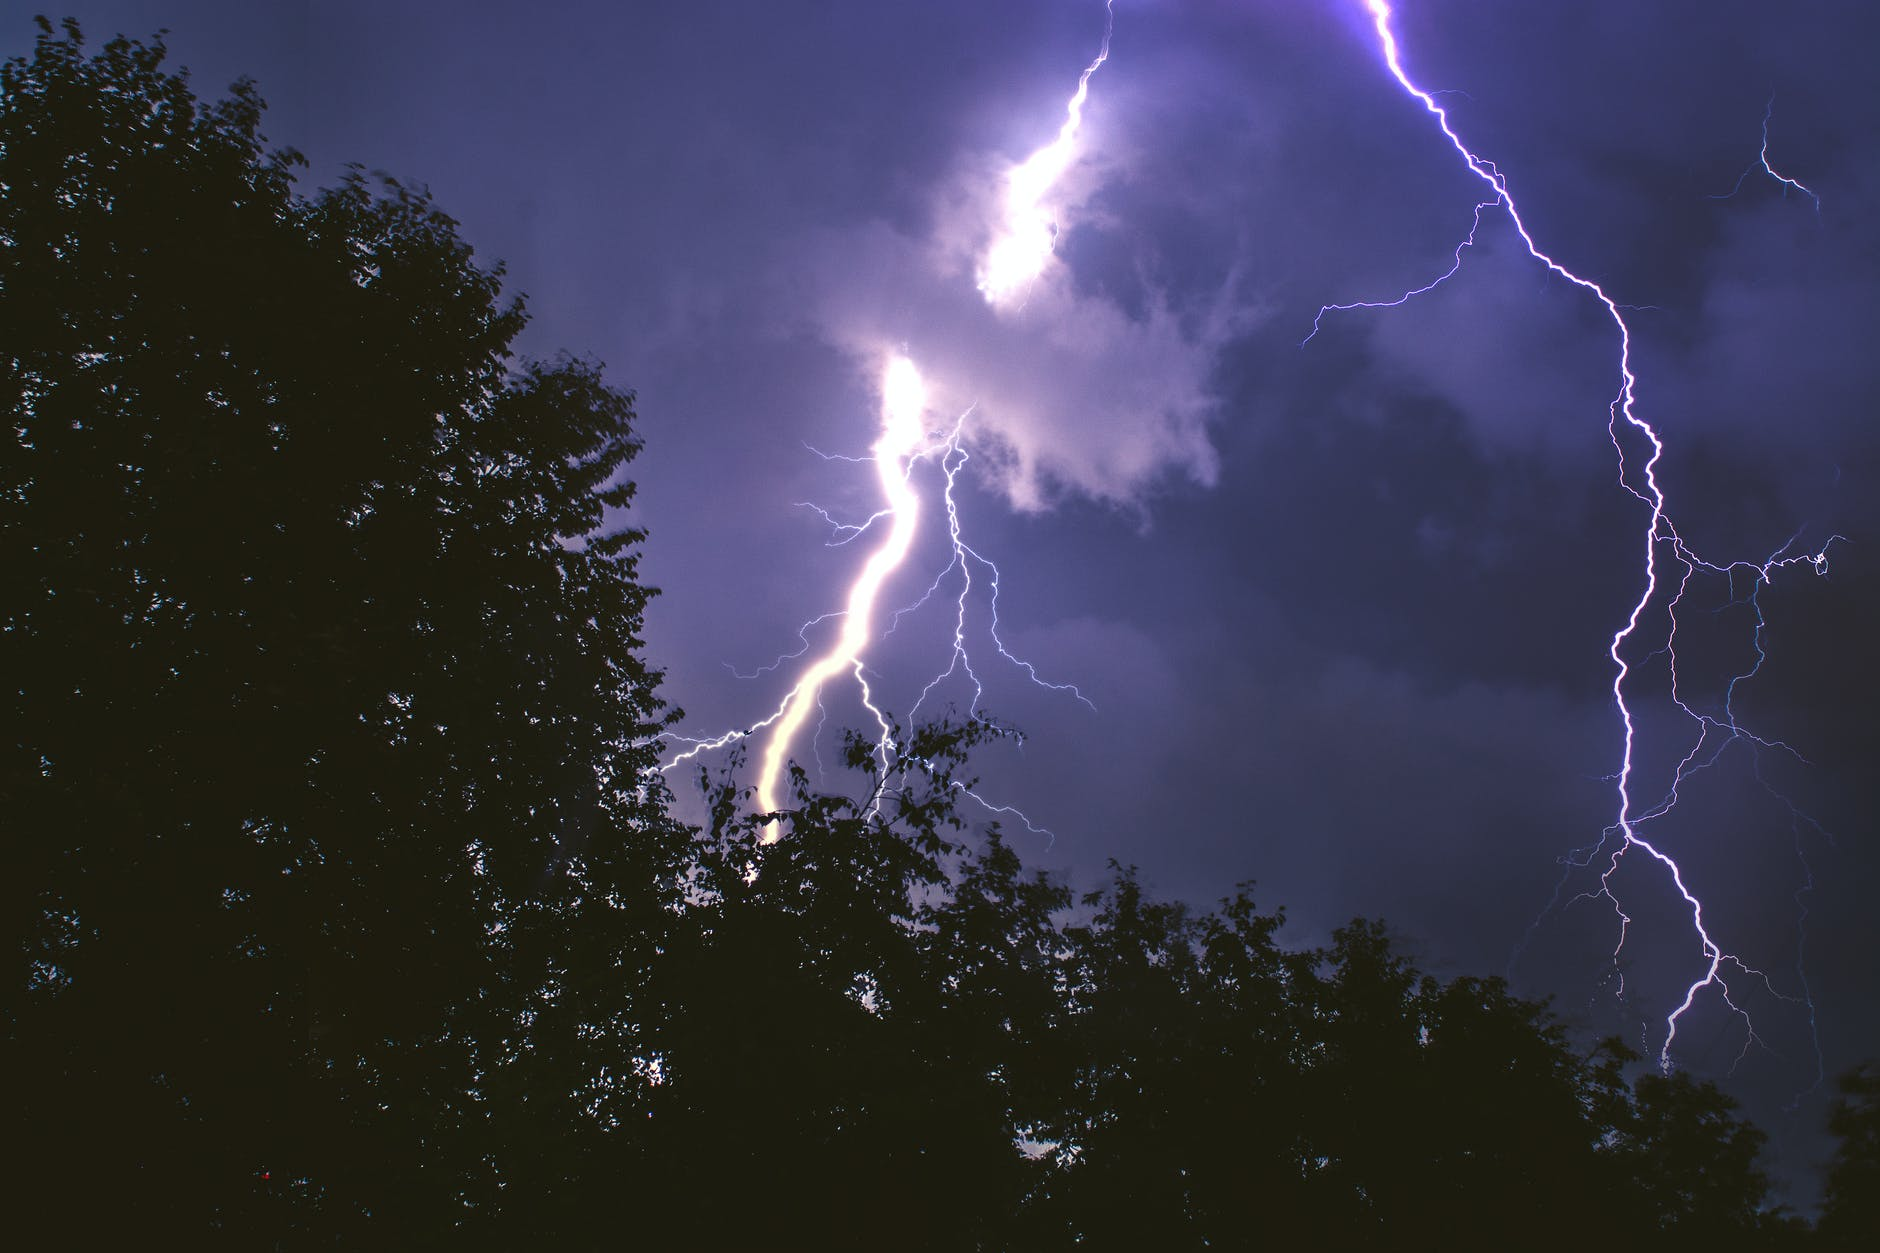 lightning strike on forest during night time